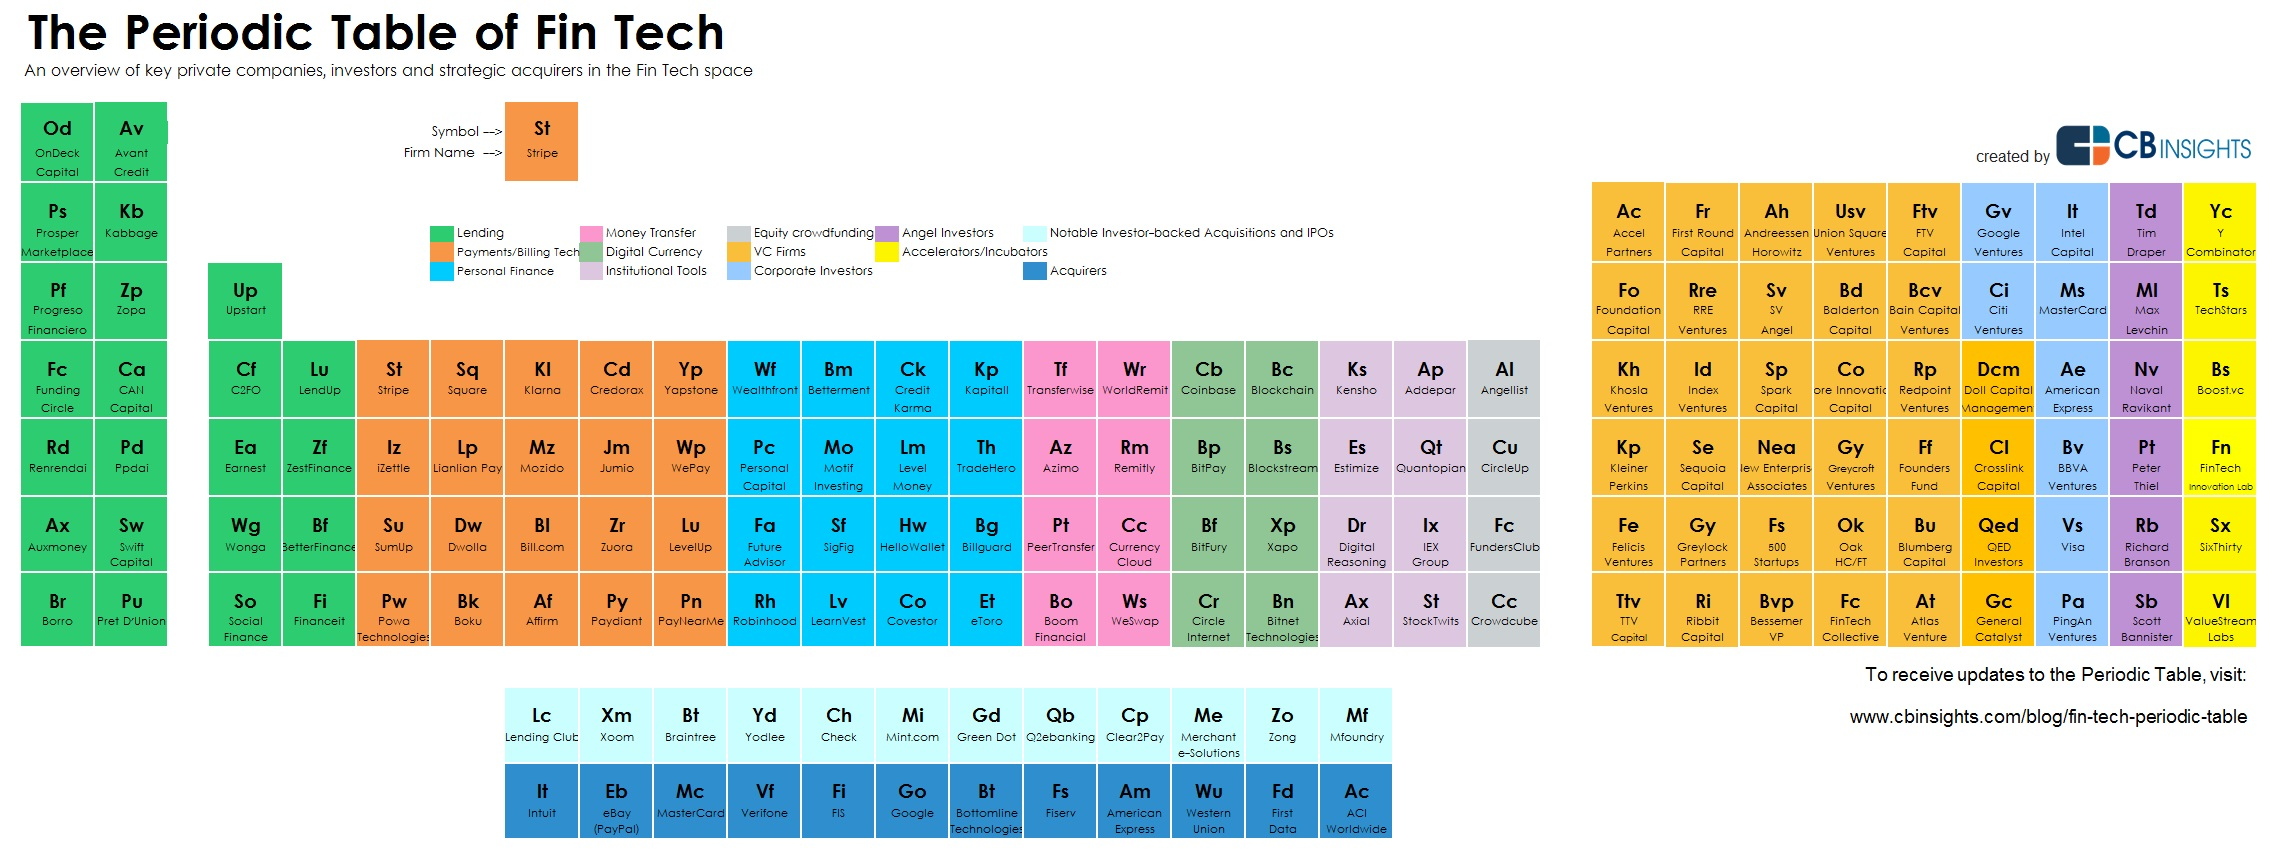 The Periodic Table Of Financial Technology Fin Tech